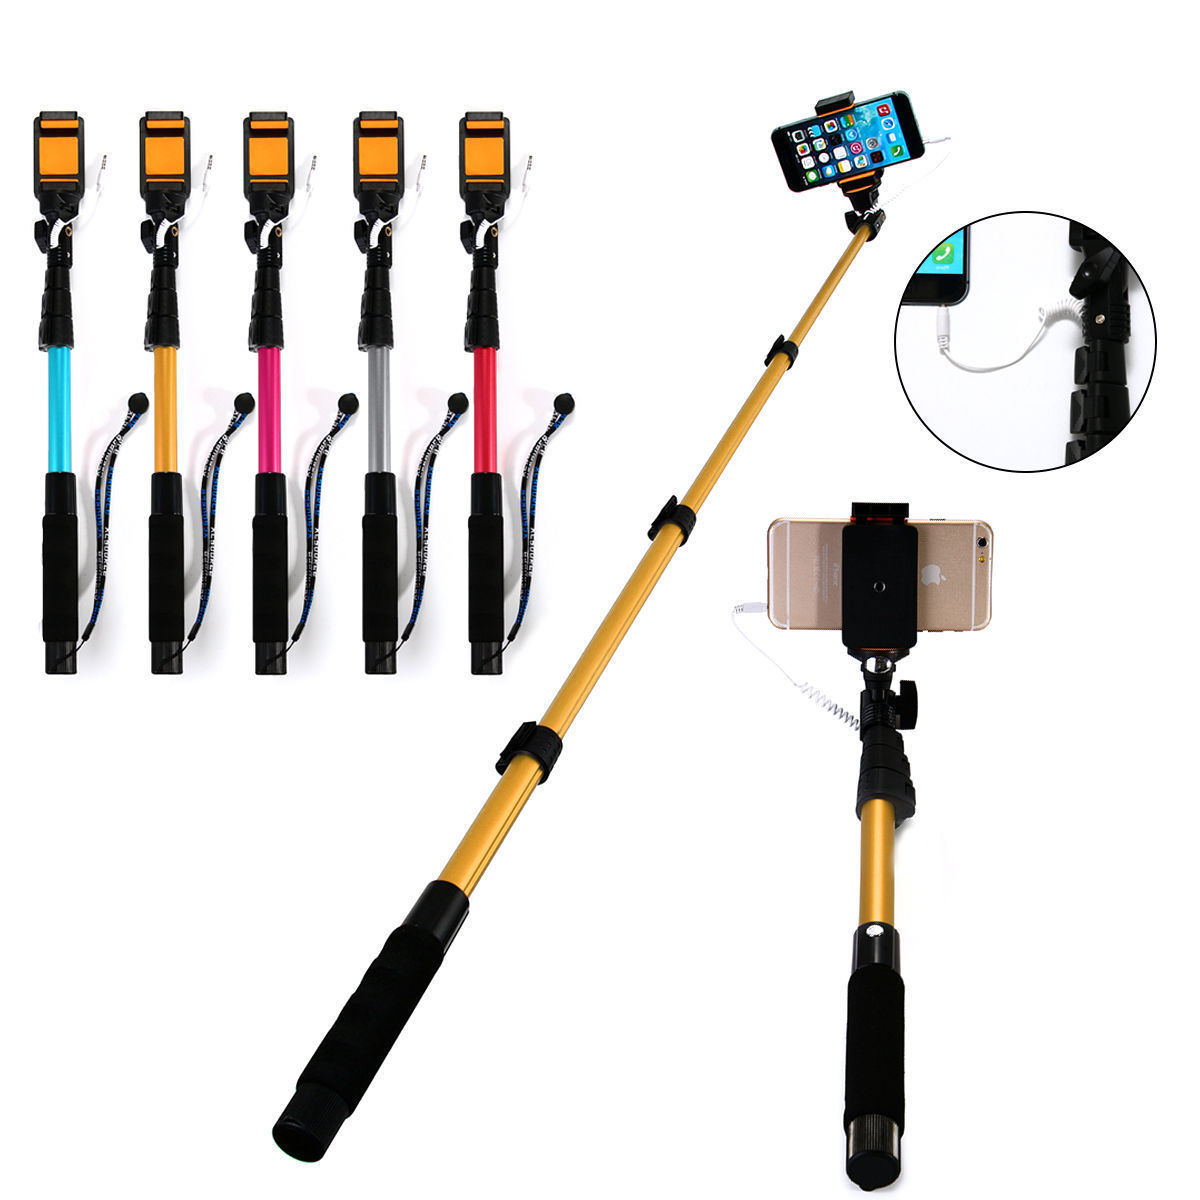 wired selfie stick extendable monopod mirror handheld for iphone 6 plus 6 5s. Black Bedroom Furniture Sets. Home Design Ideas